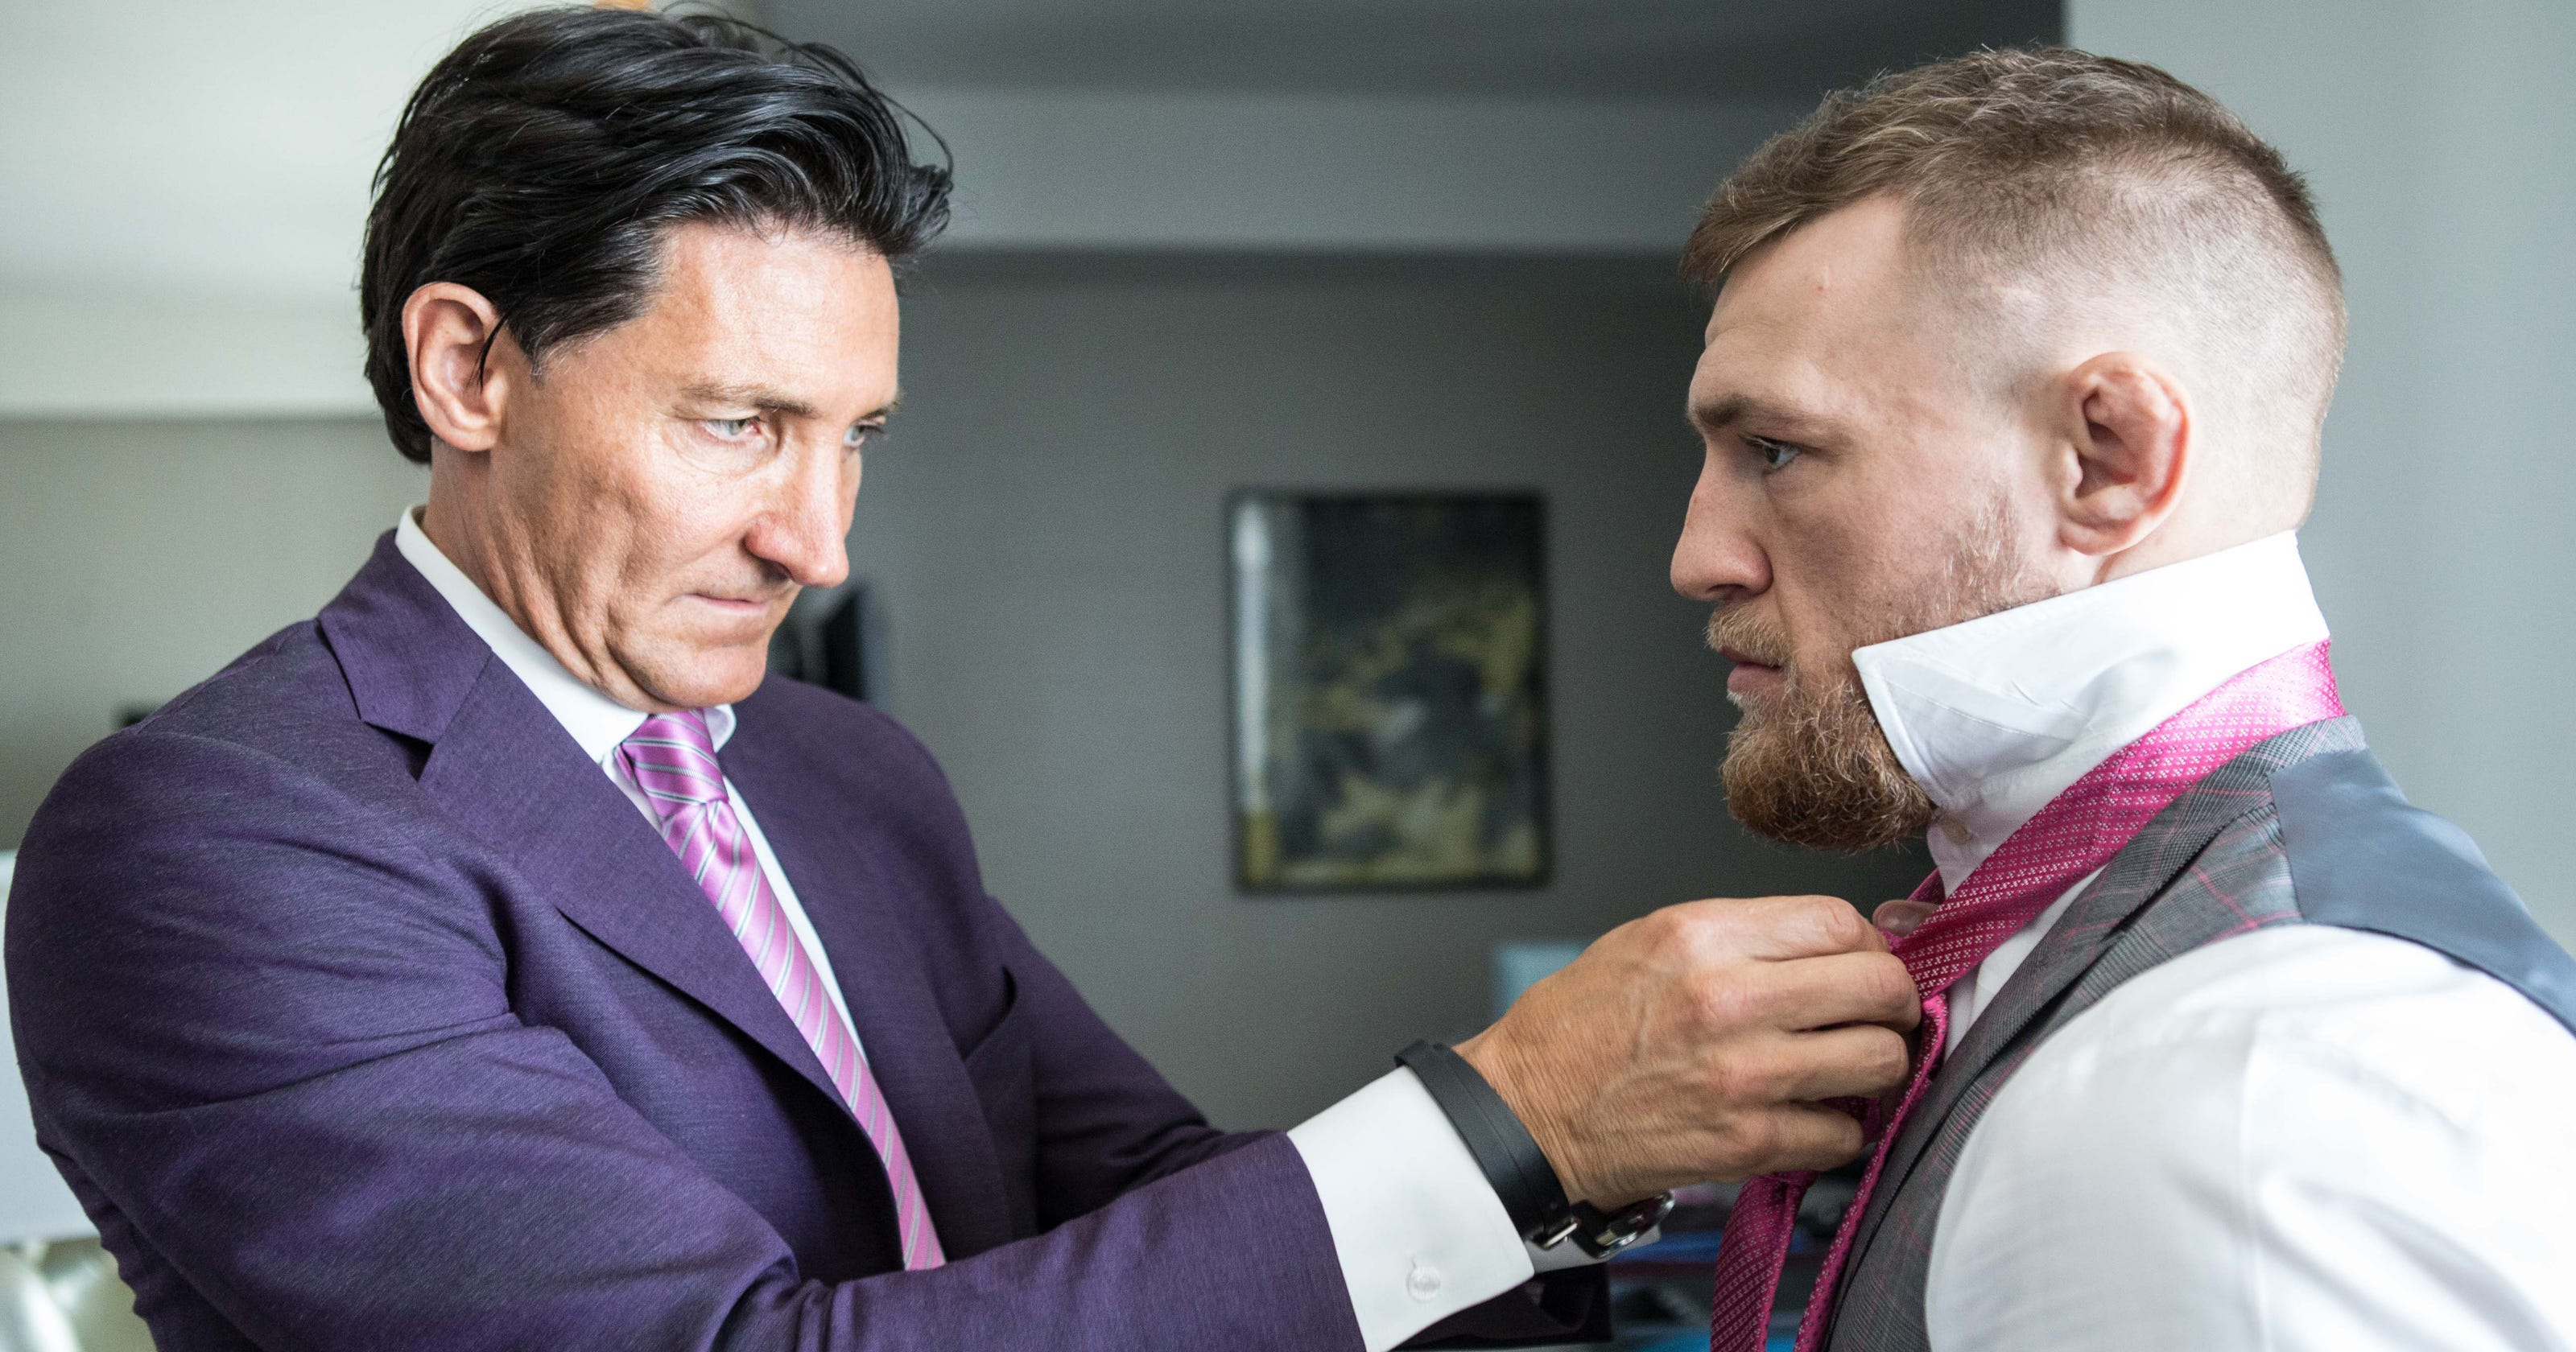 Conor Mcgregor Dresses For Success At This Man S Direction